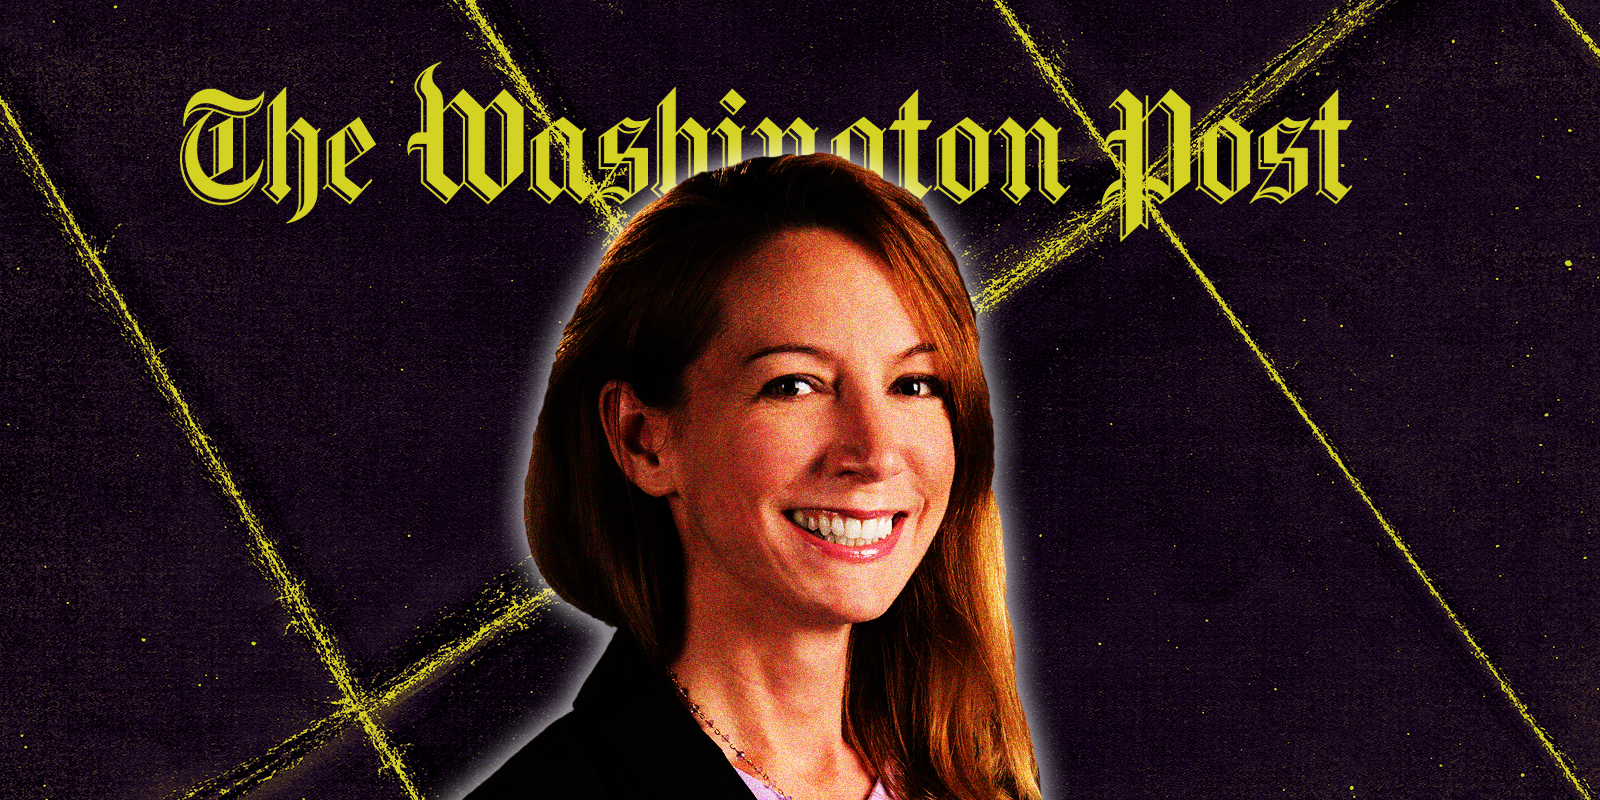 The Washington Post cancelled its number one canceller